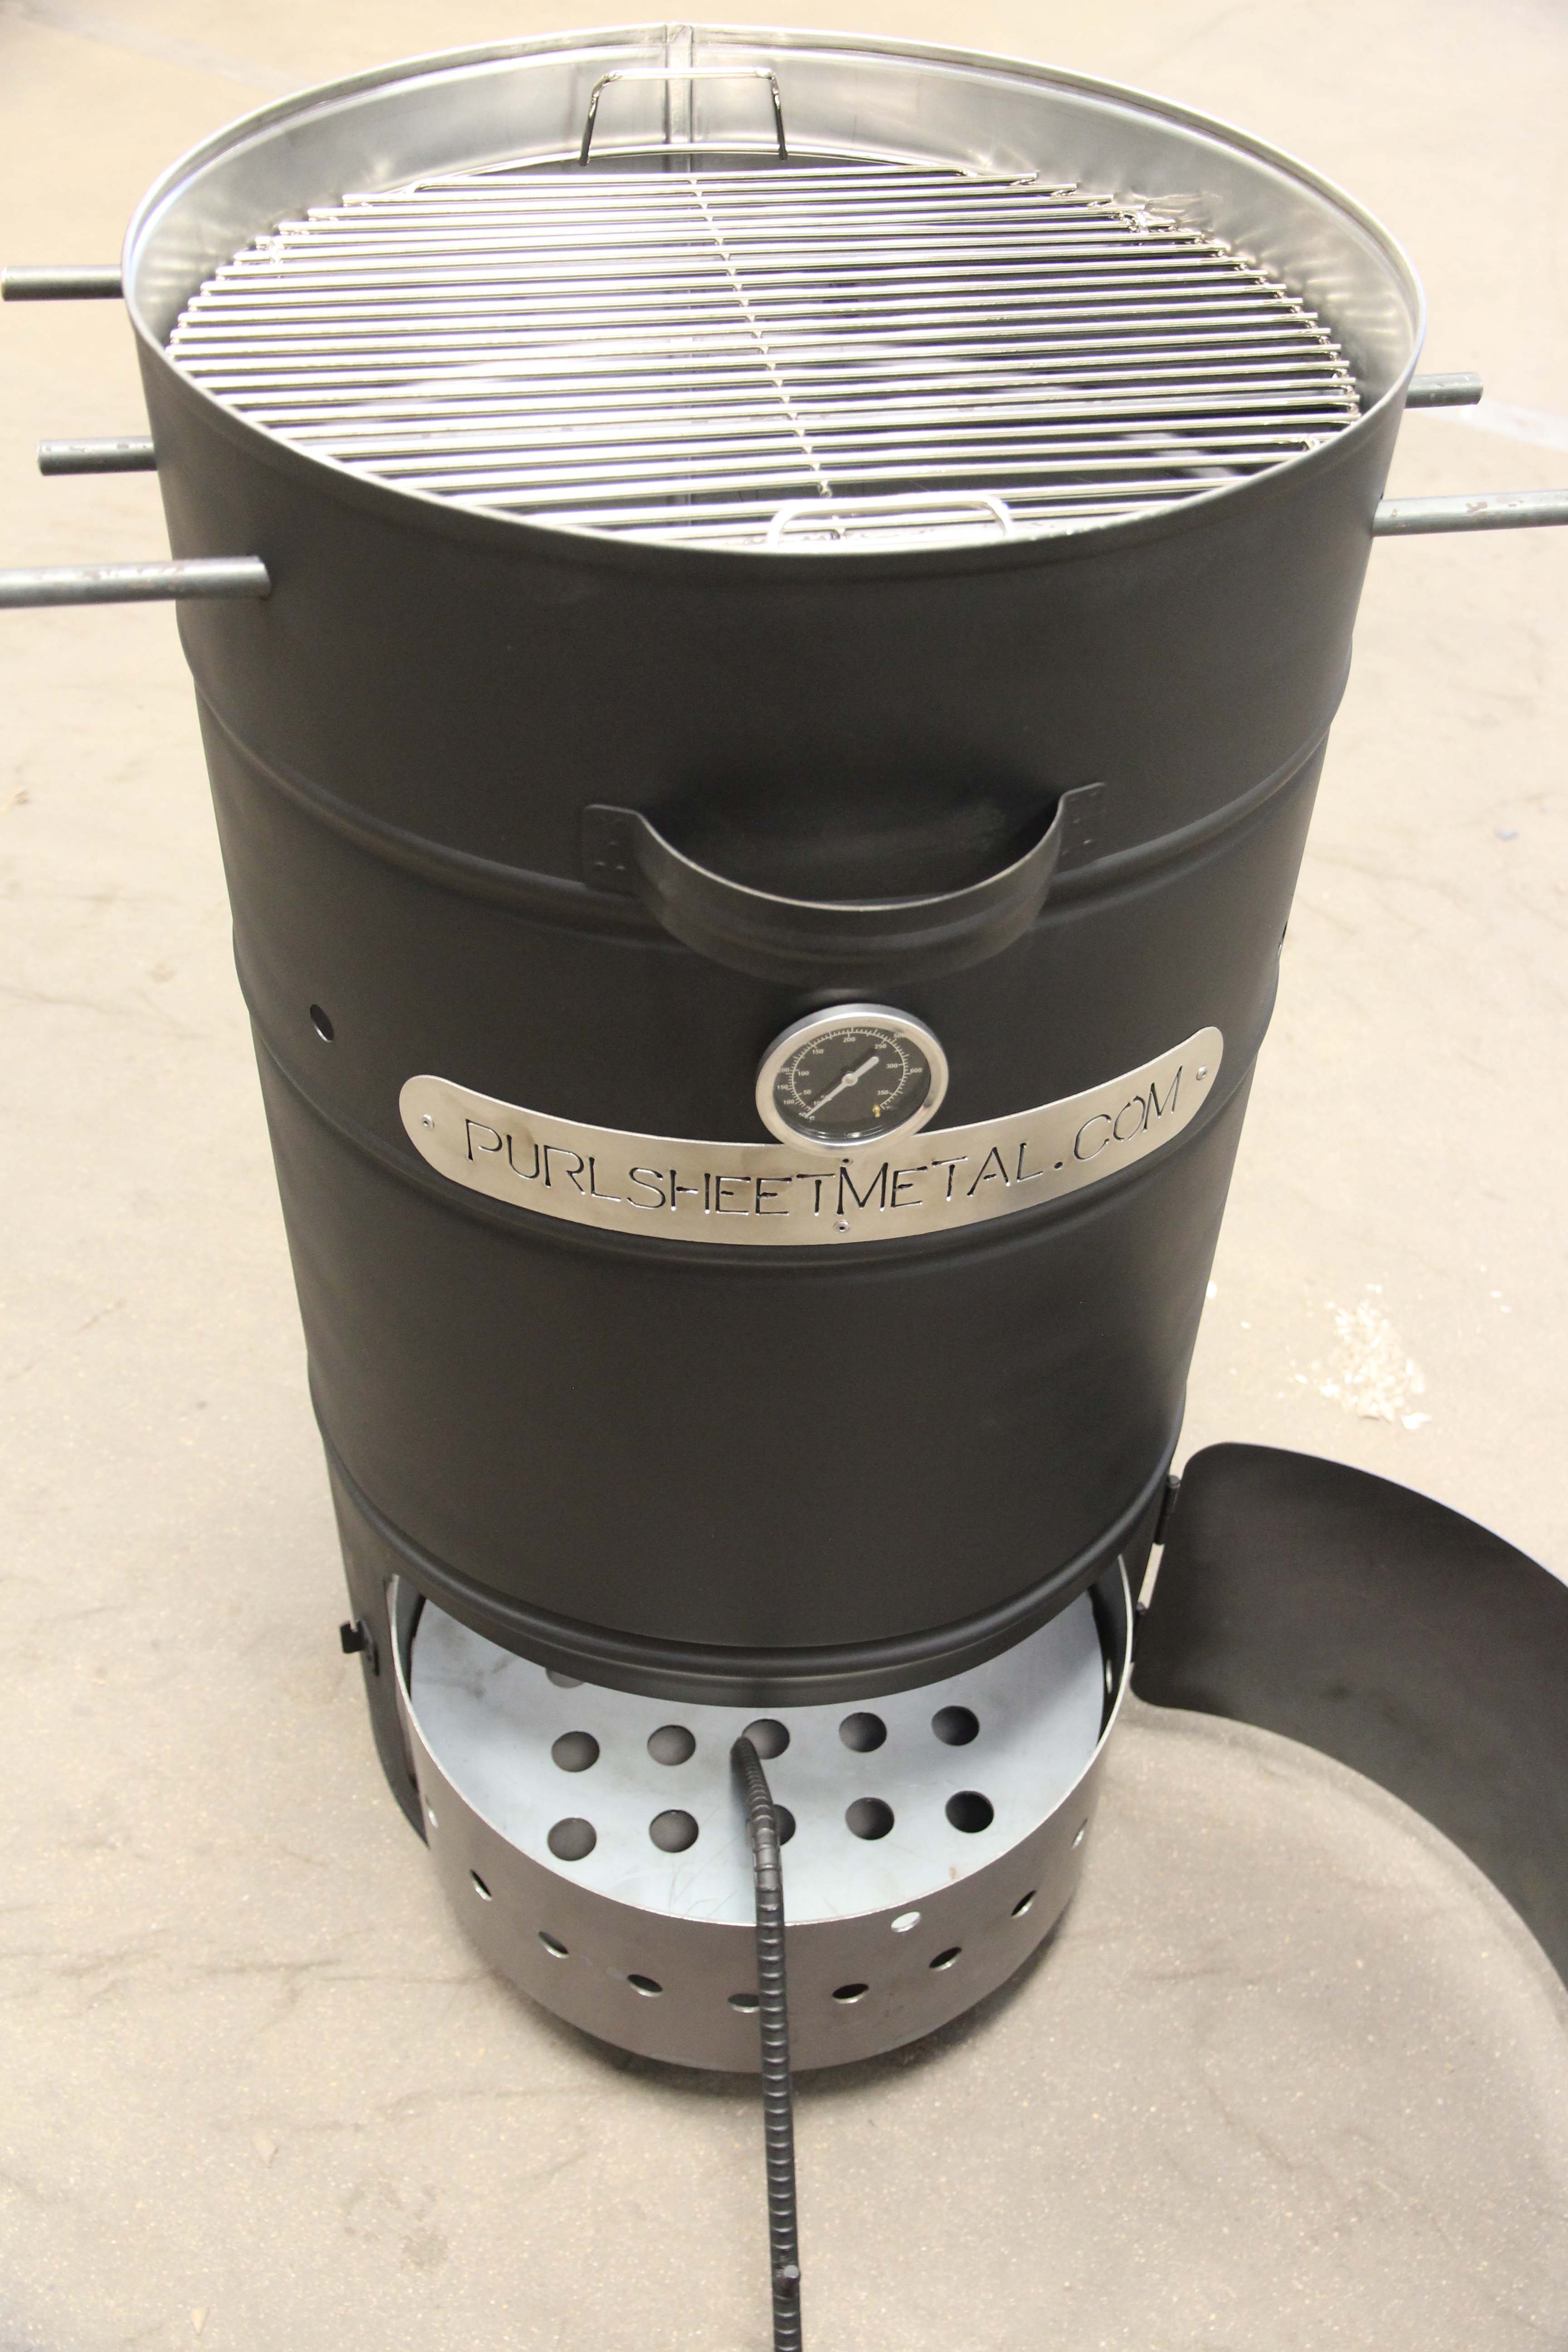 Purl S Sheet Metal Amp Air Conditioning Barbeque Smokers